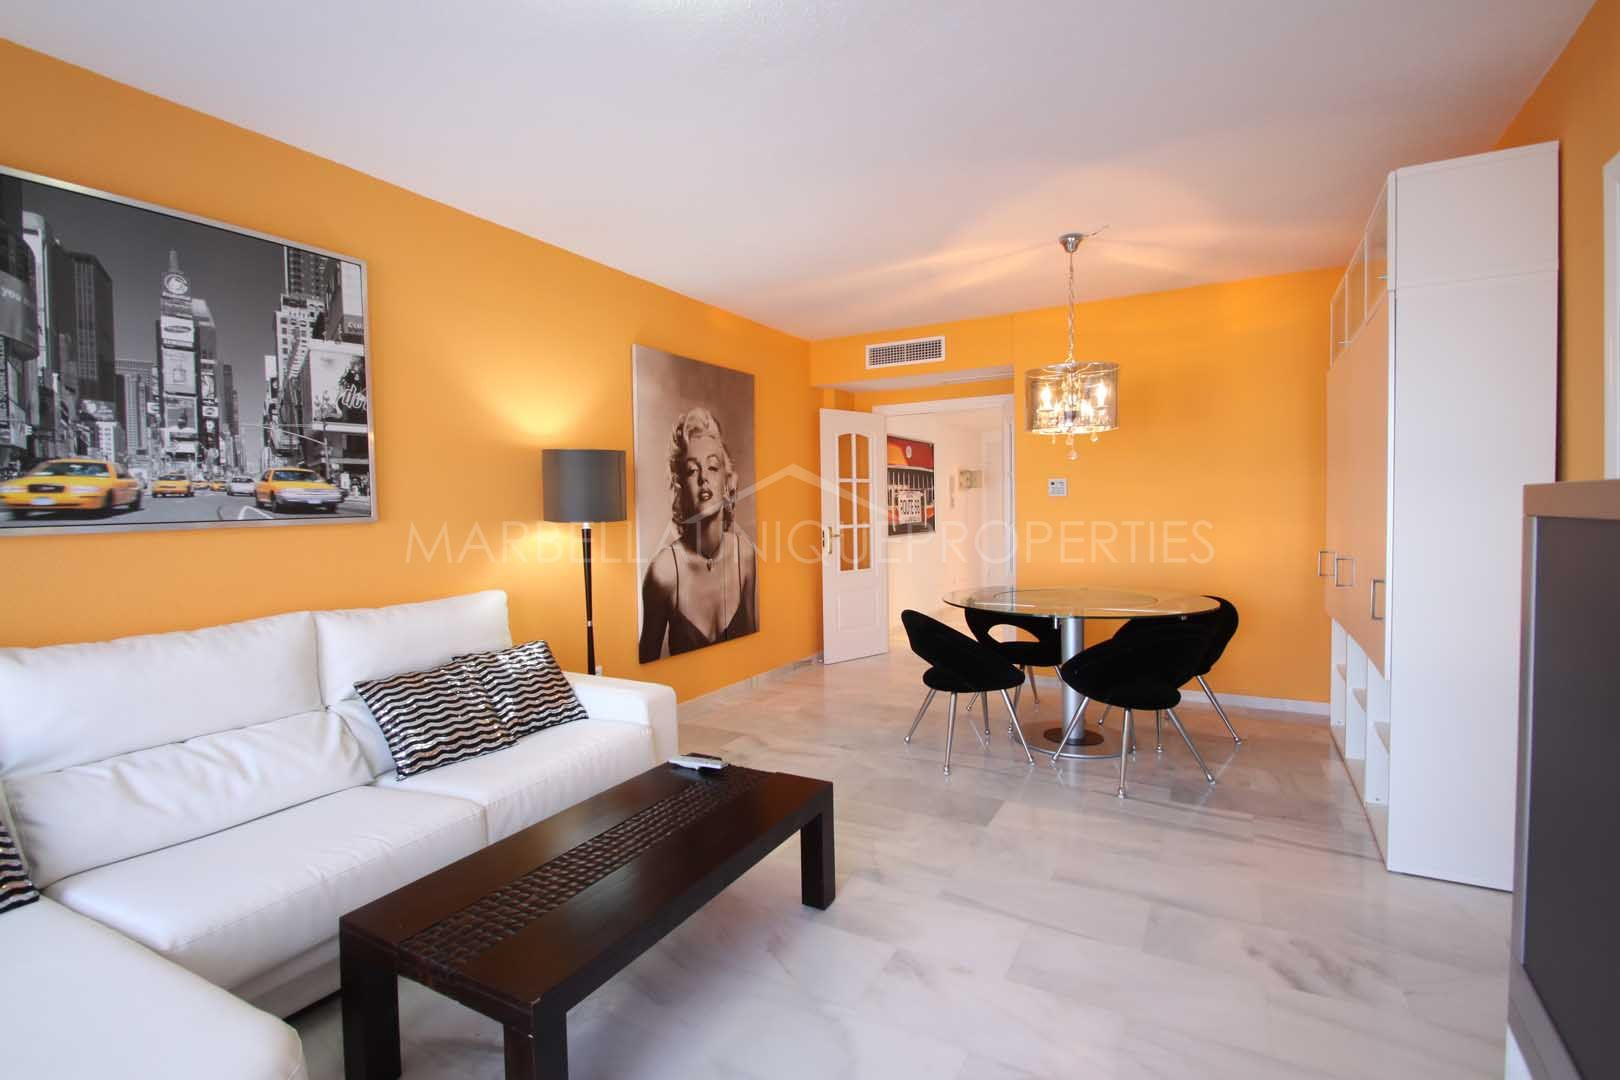 Splendid apartment with sea views and close to the beach in Manilva